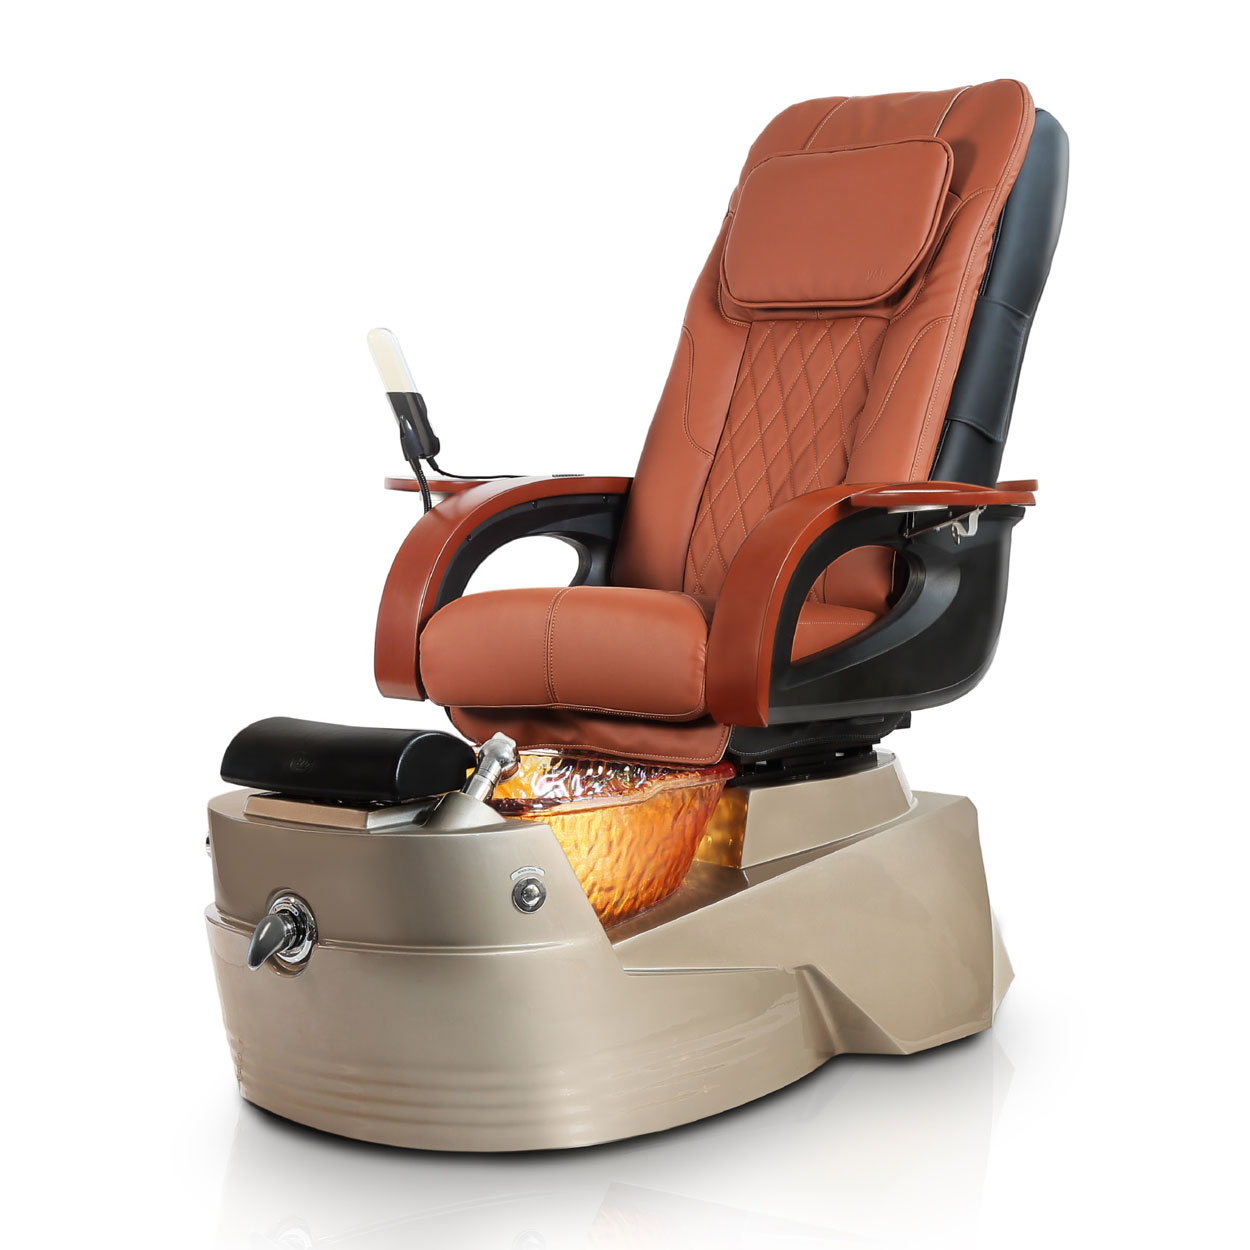 Petra Gx Pedicure Spa Chair J Amp A